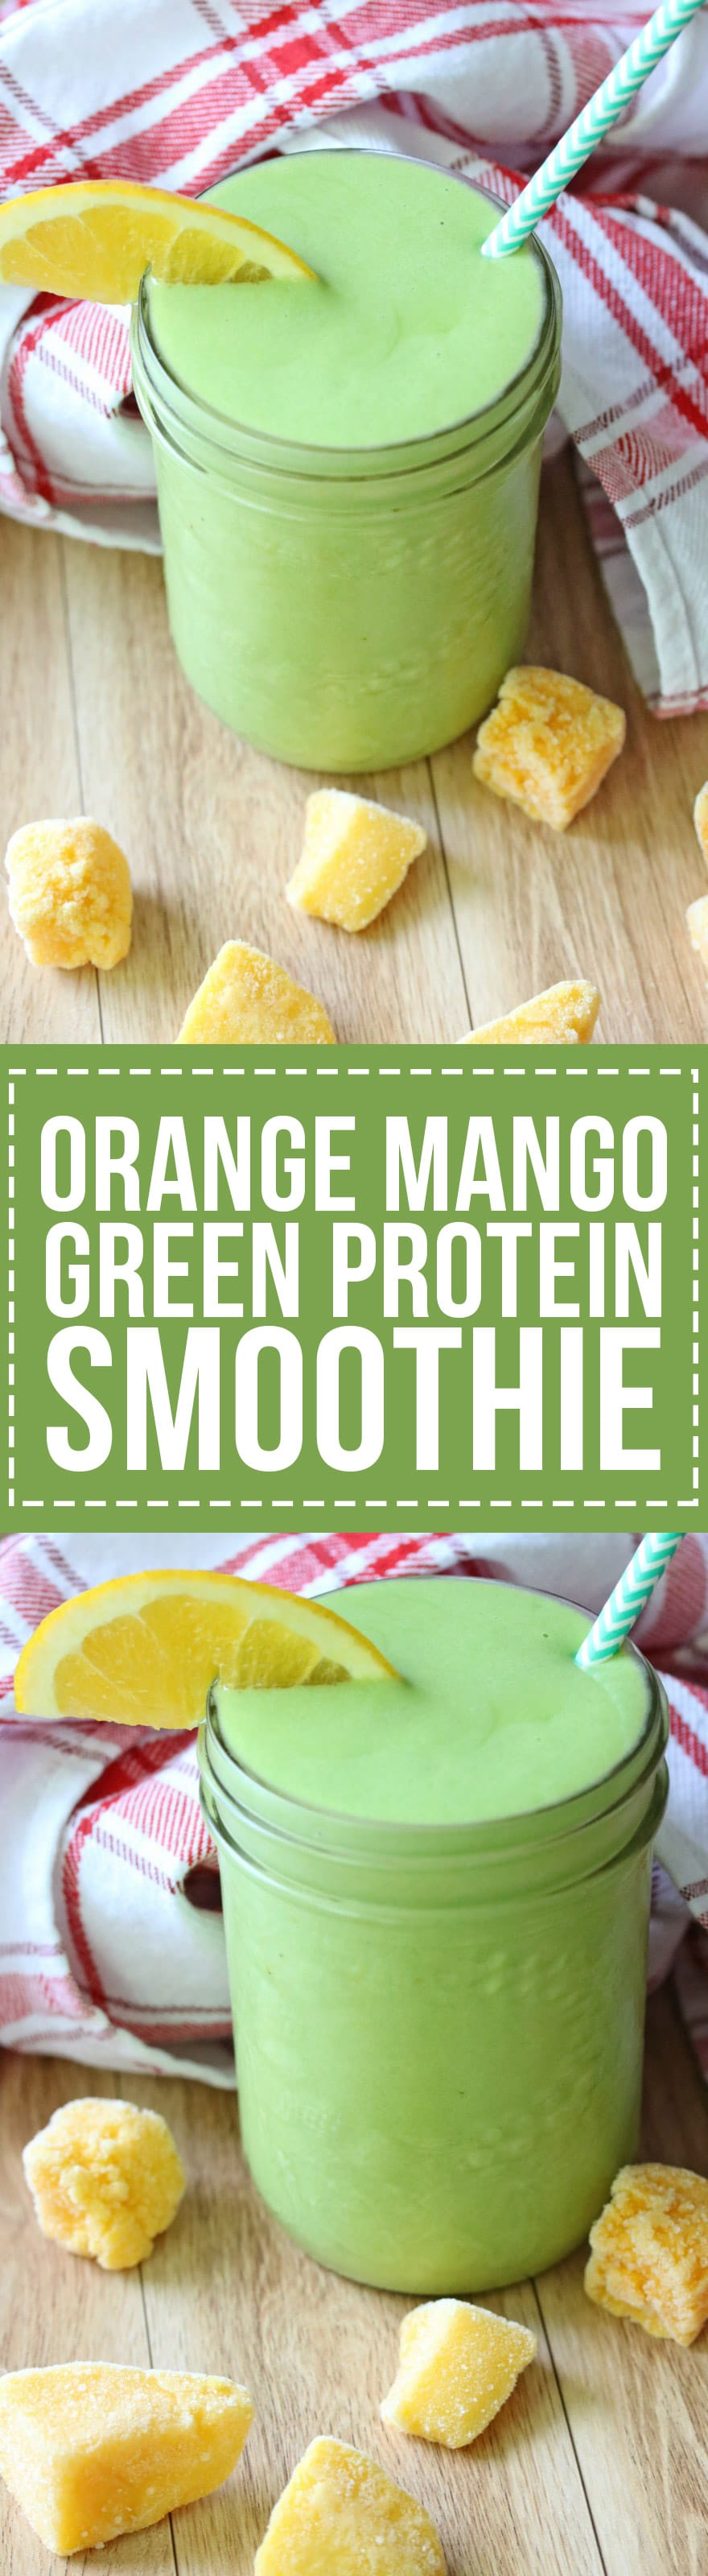 This Orange Mango Green Protein Smoothie is a great breakfast or post-workout pick-me-up with mango, orange juice, avocado, spinach, almond milk and your favorite protein powder.